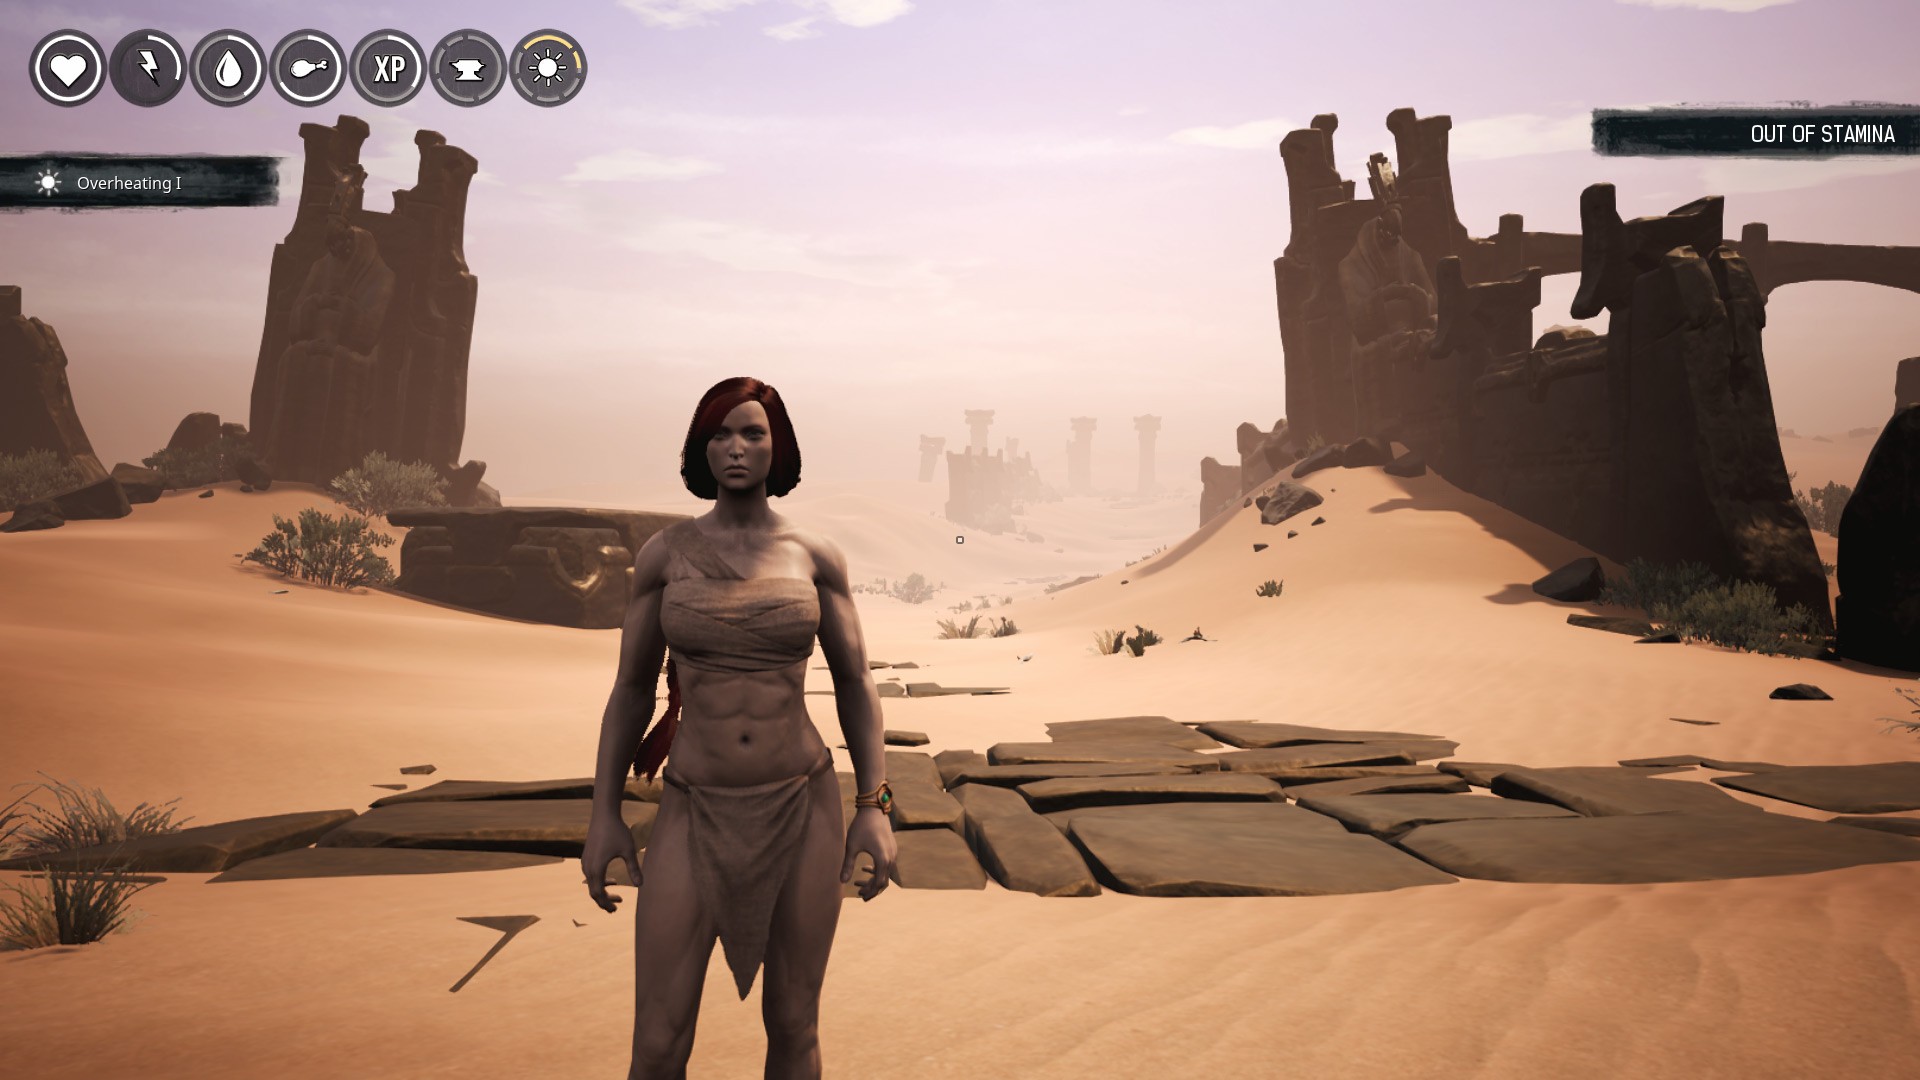 FiXED] Conan Exiles Server Down Problem (Xbox One, PS4